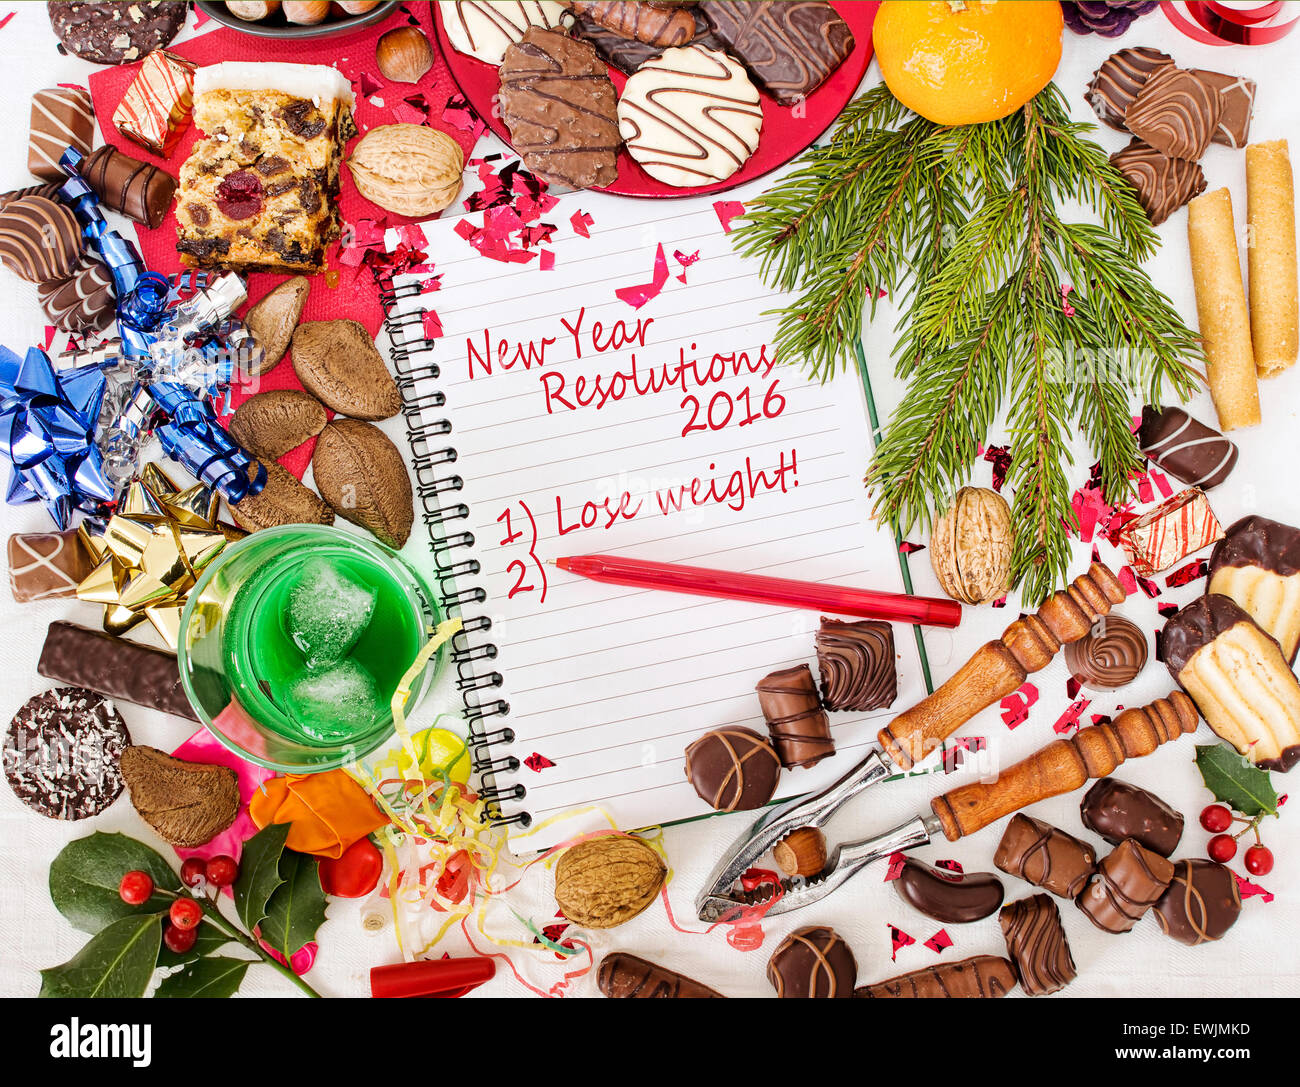 Overindulgence at Christmas - then Resolution to lose weight. Humour. - Stock Image